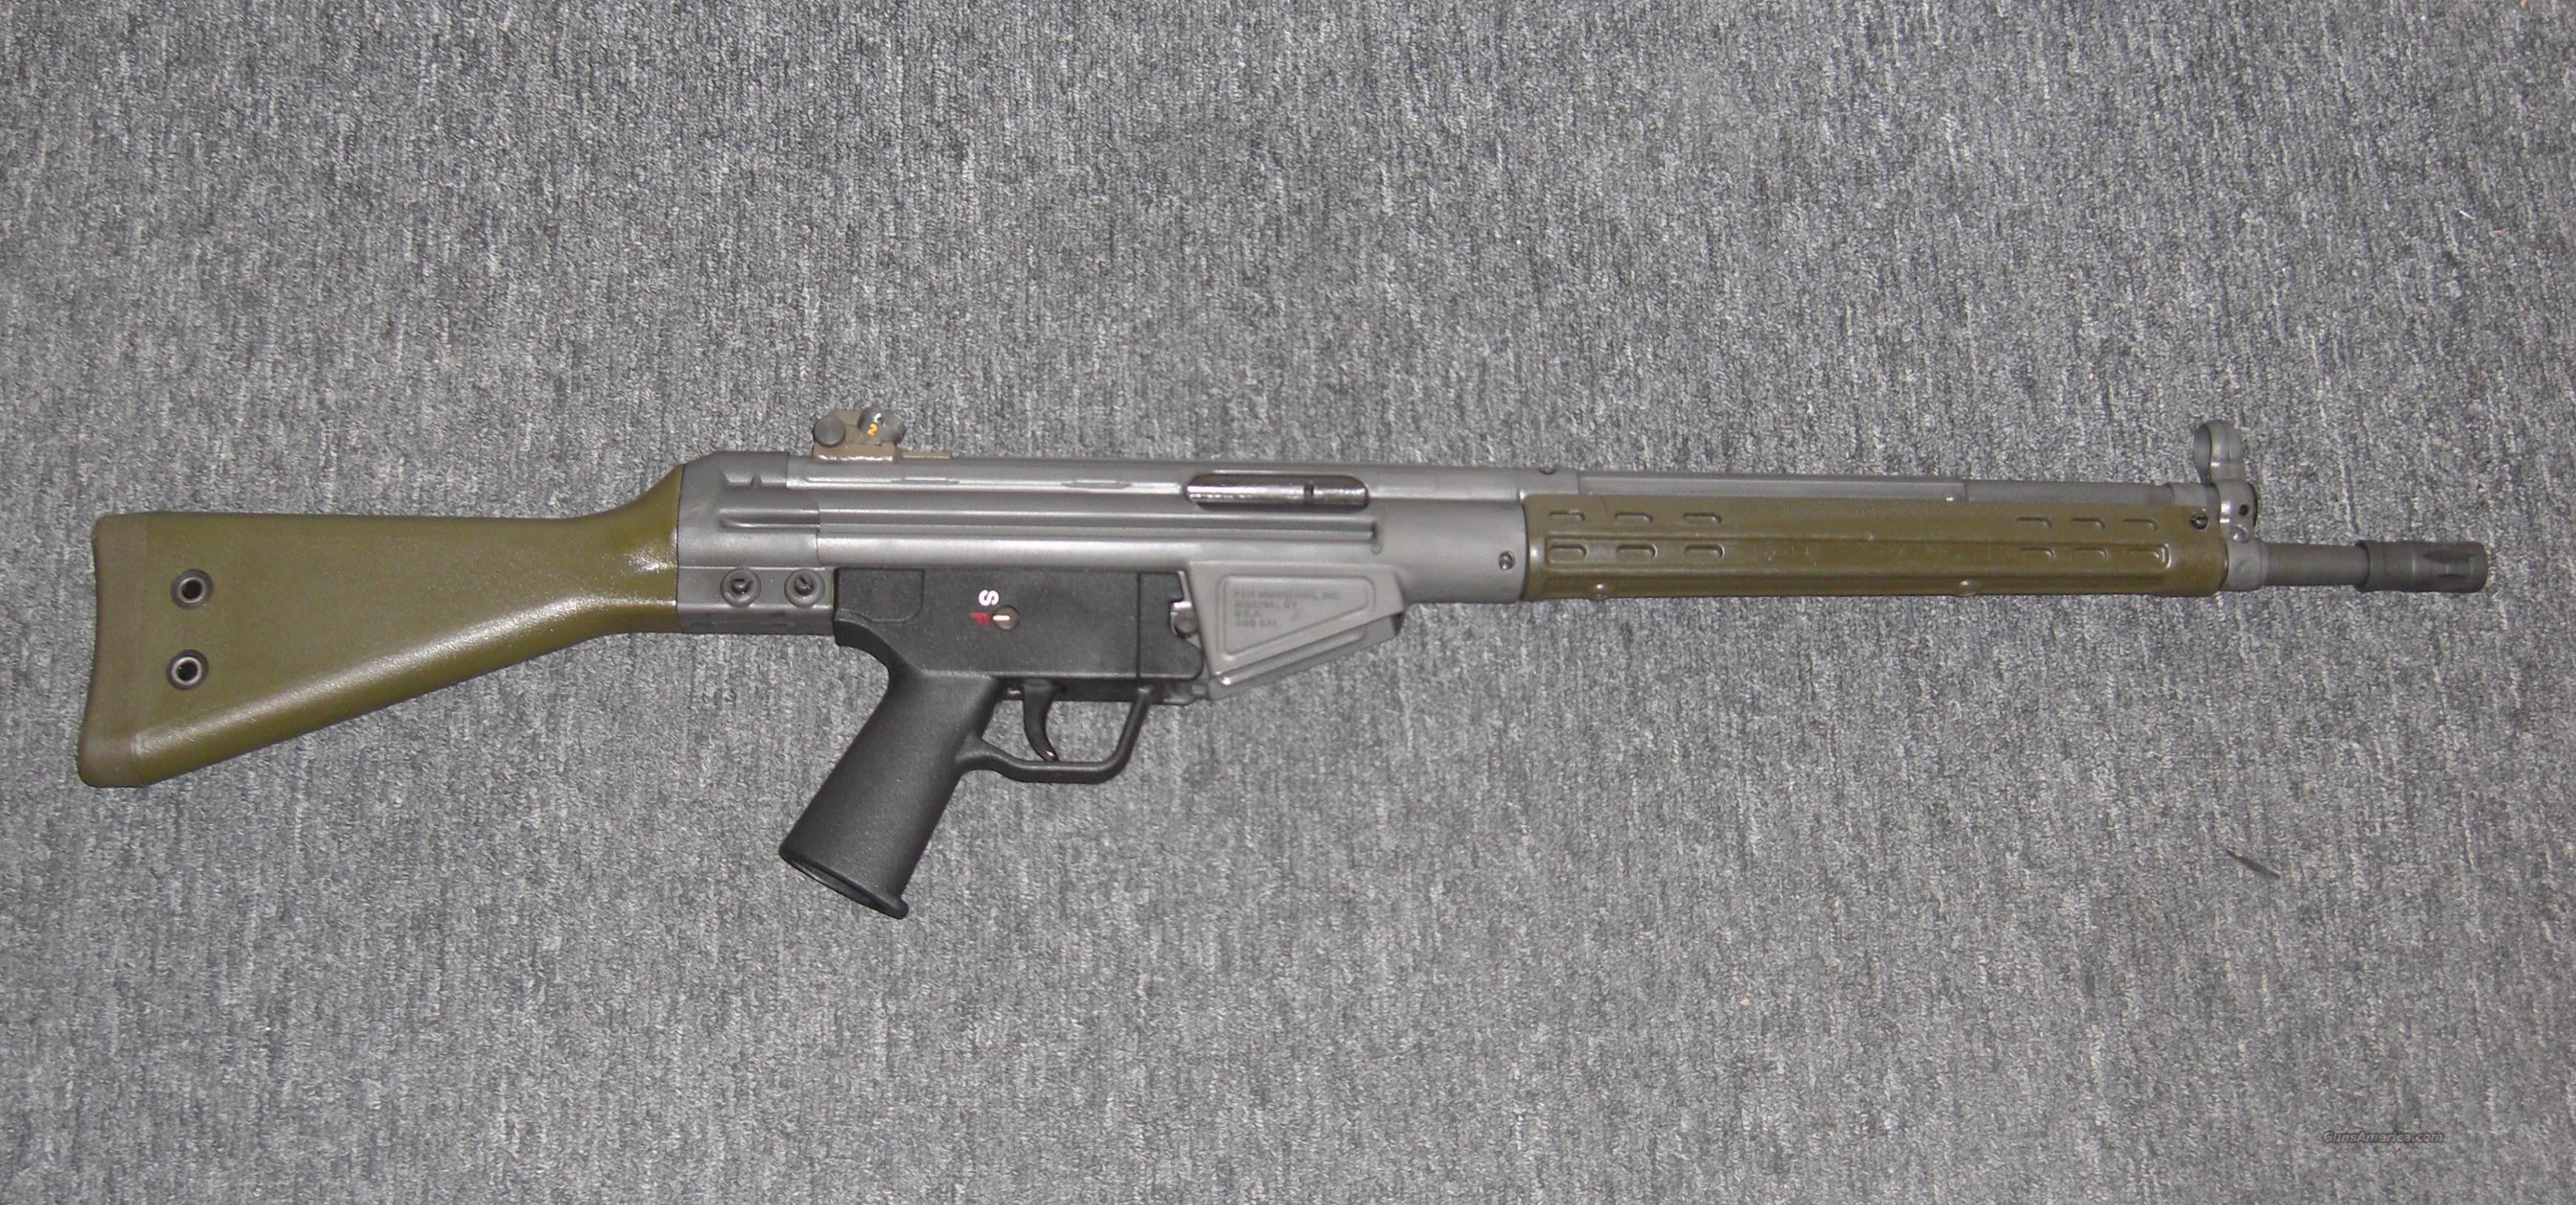 PTR 91  HK clone  Guns > Rifles > Heckler & Koch Rifles > Tactical